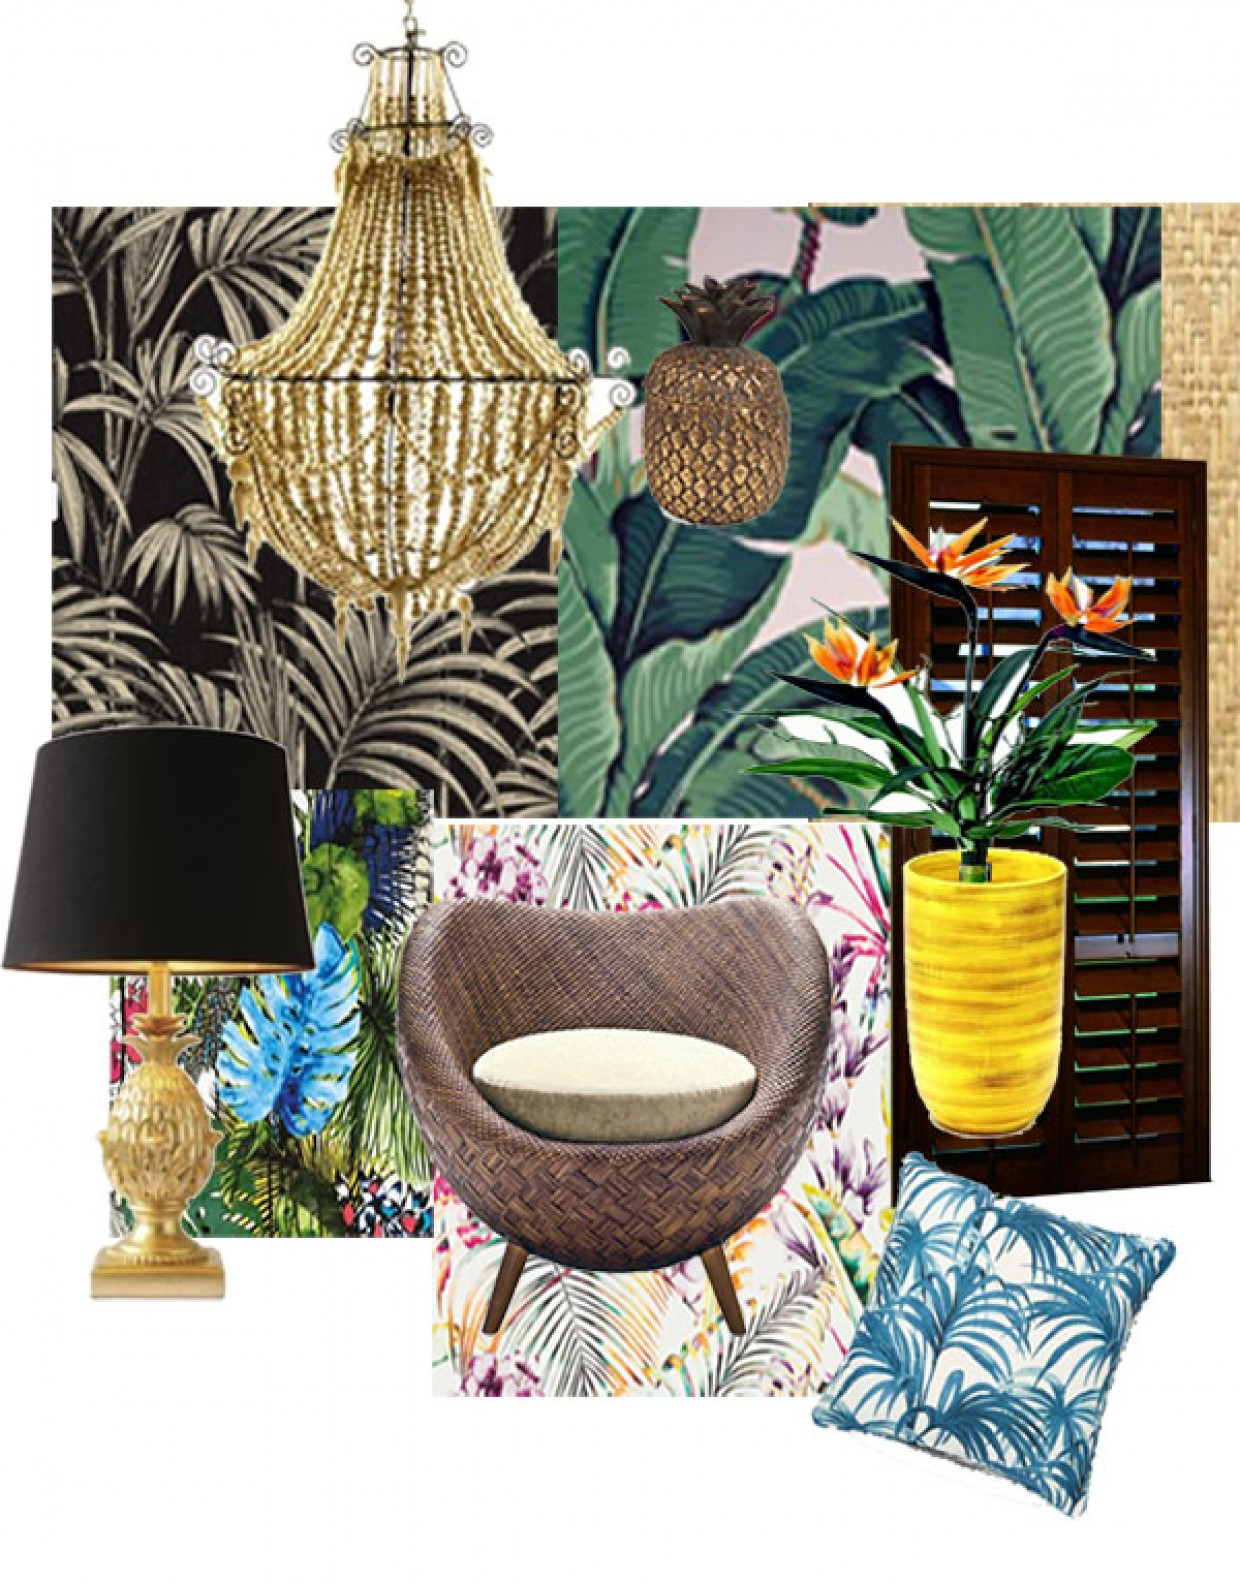 STYLE U2013 TROPICAL CHIC